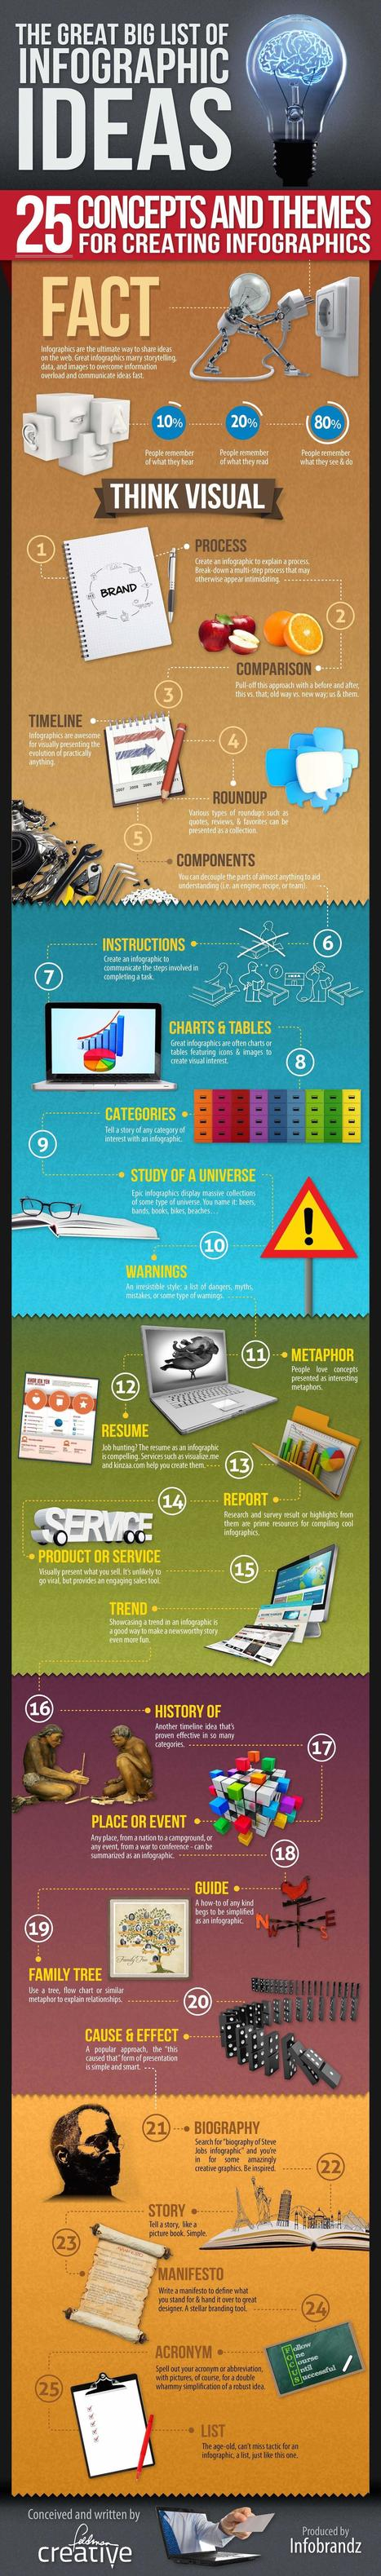 25 Ideas For Creating Infographics http://huxo.co.uk/25-ideas-for-creating-infographics/ #SocialMedia #Marketing | Social Media Marketing | Scoop.it